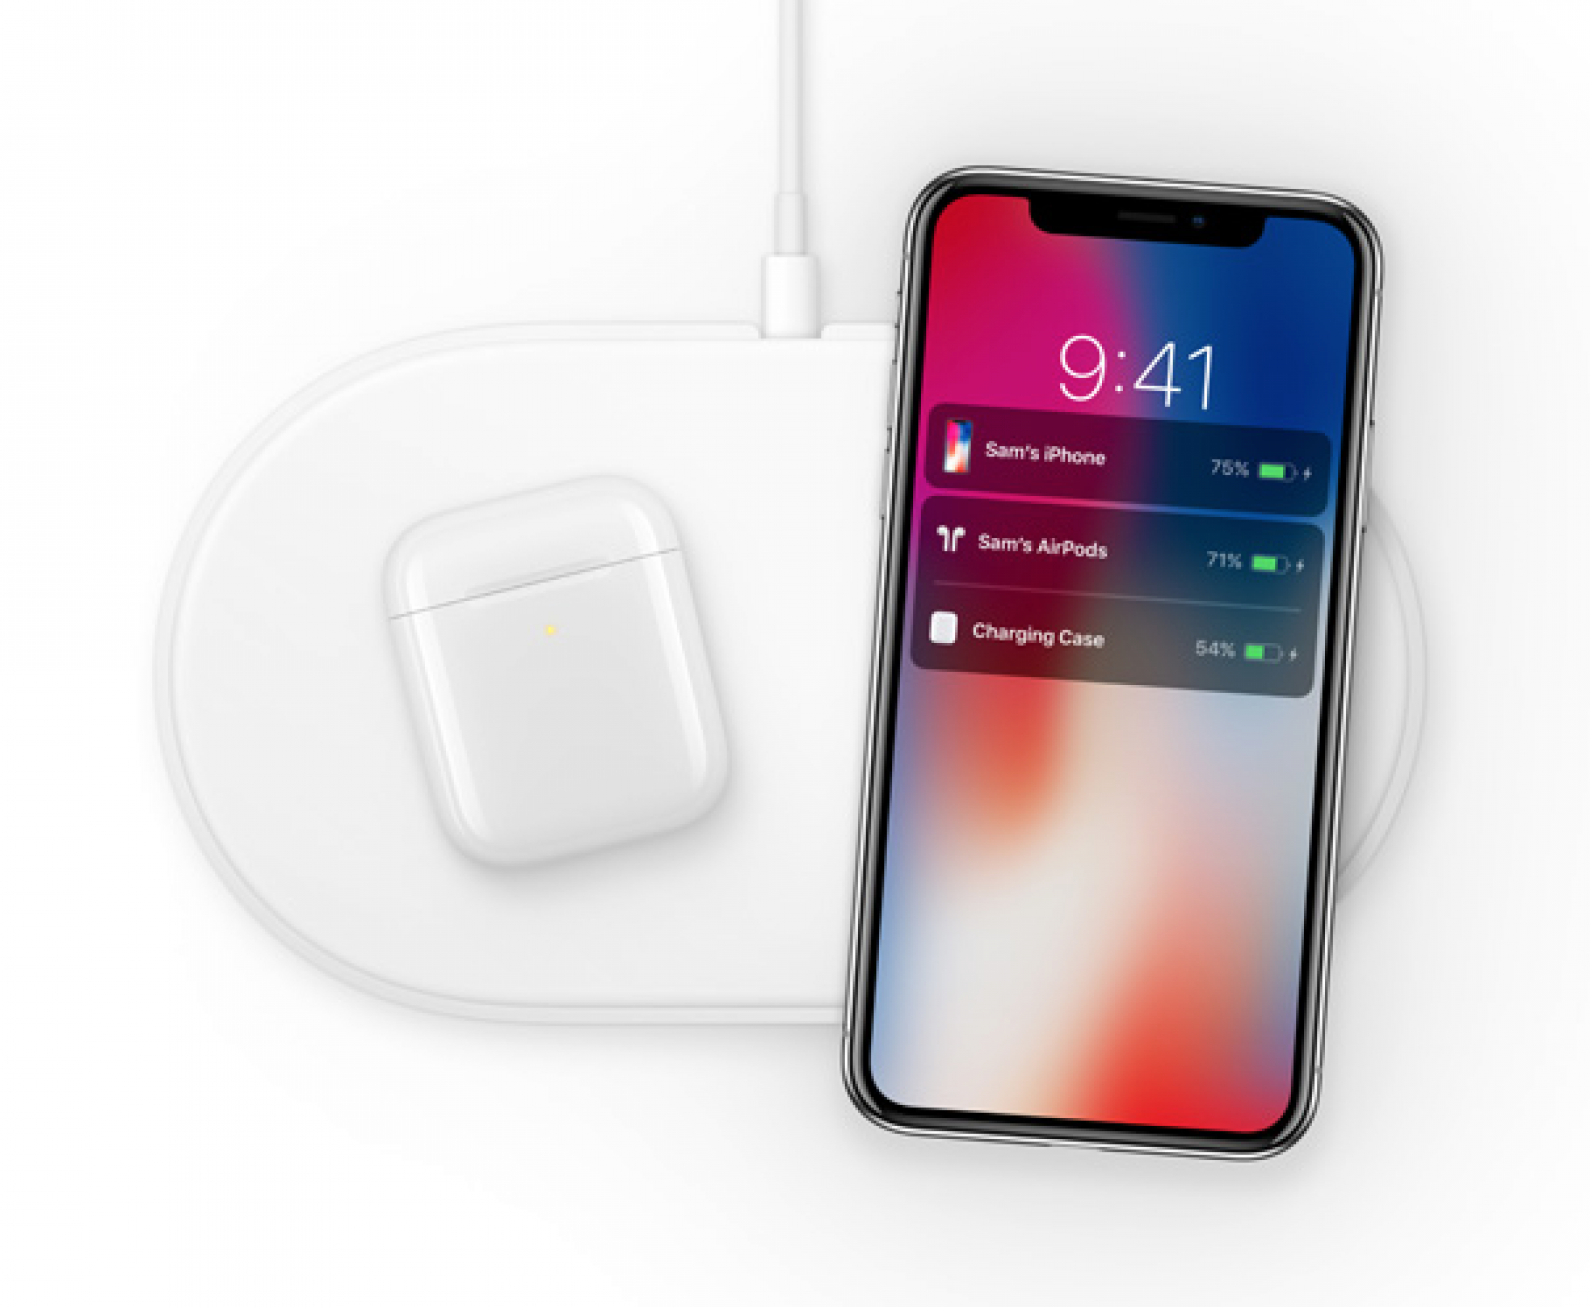 Announced: Apple AirPods 2019 Release Date, Plus StudioPods